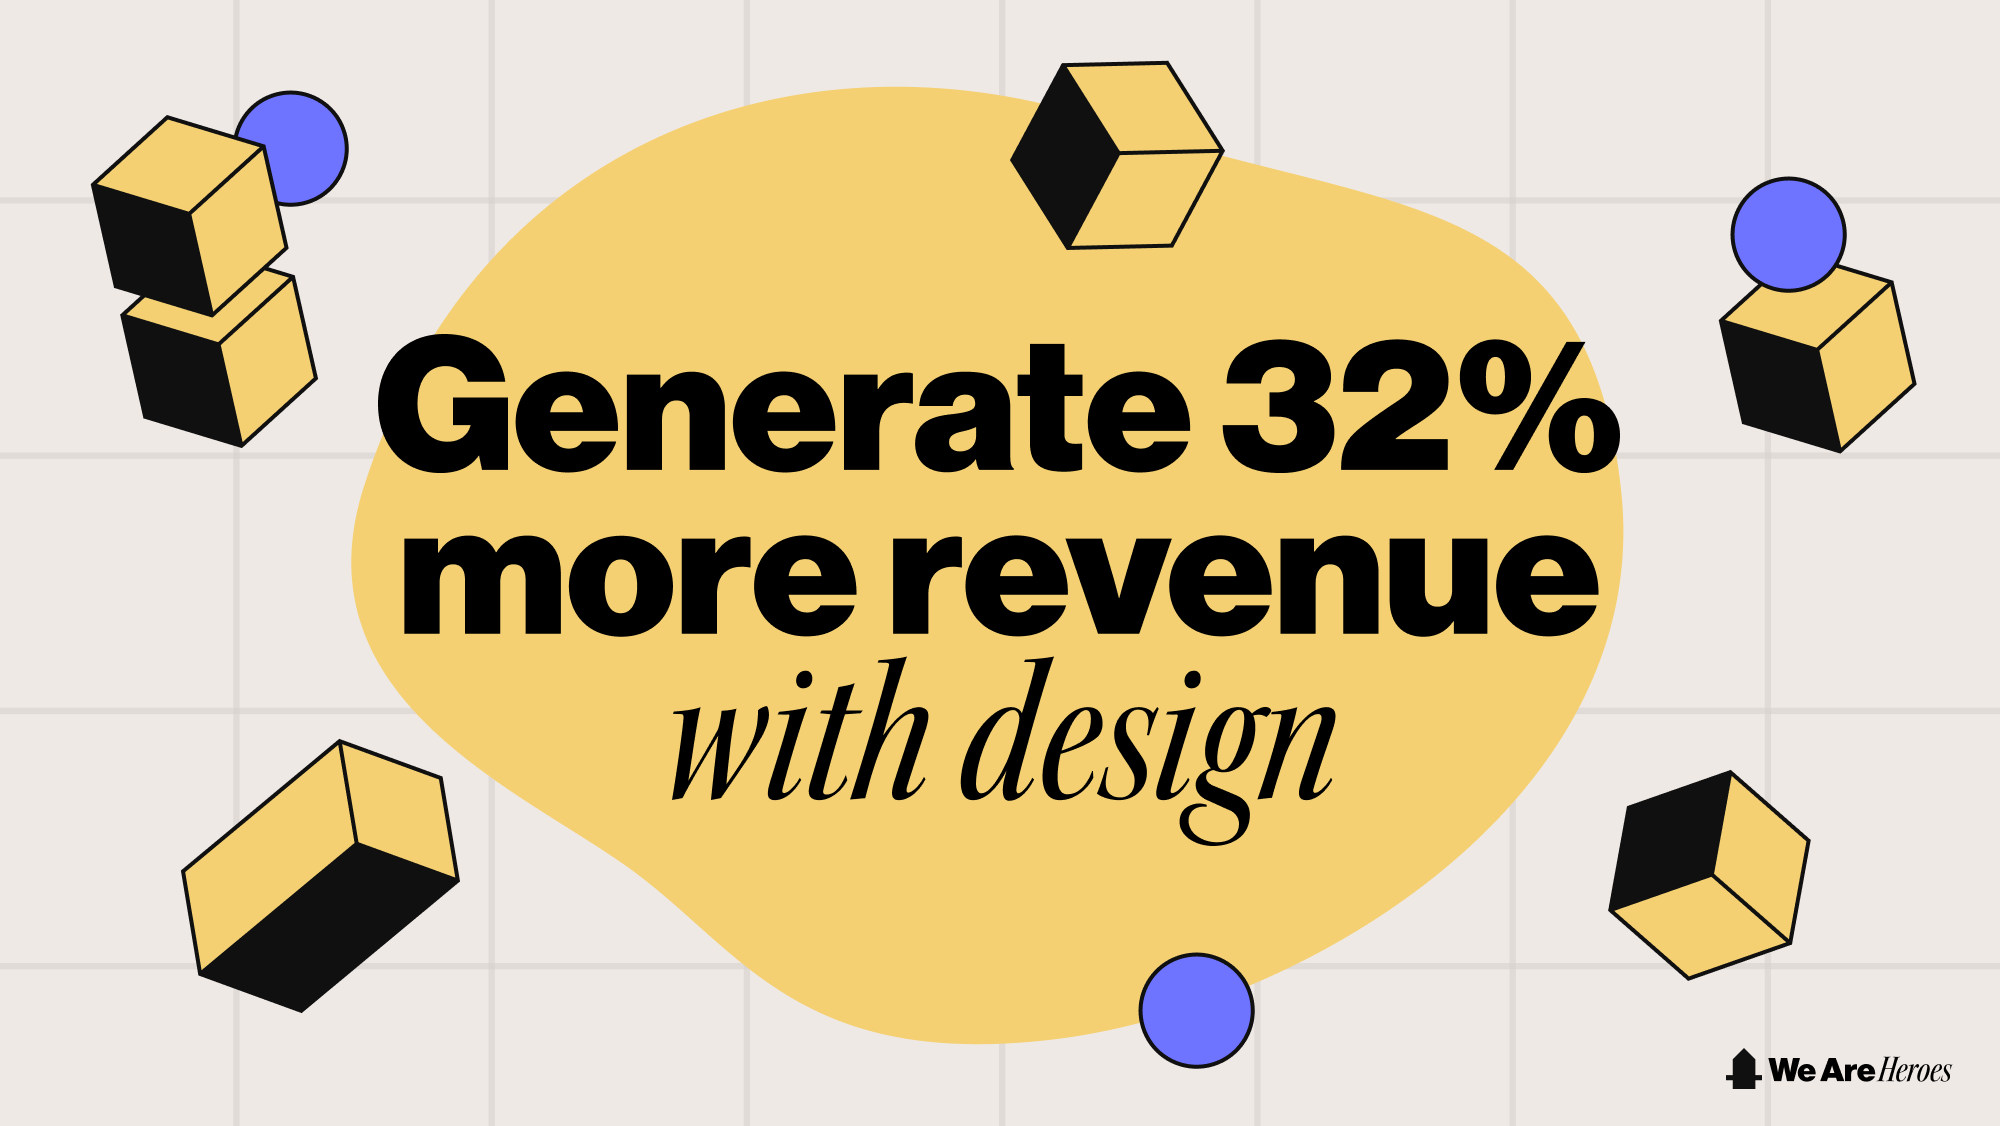 One of the many benefits of investing in design for your business